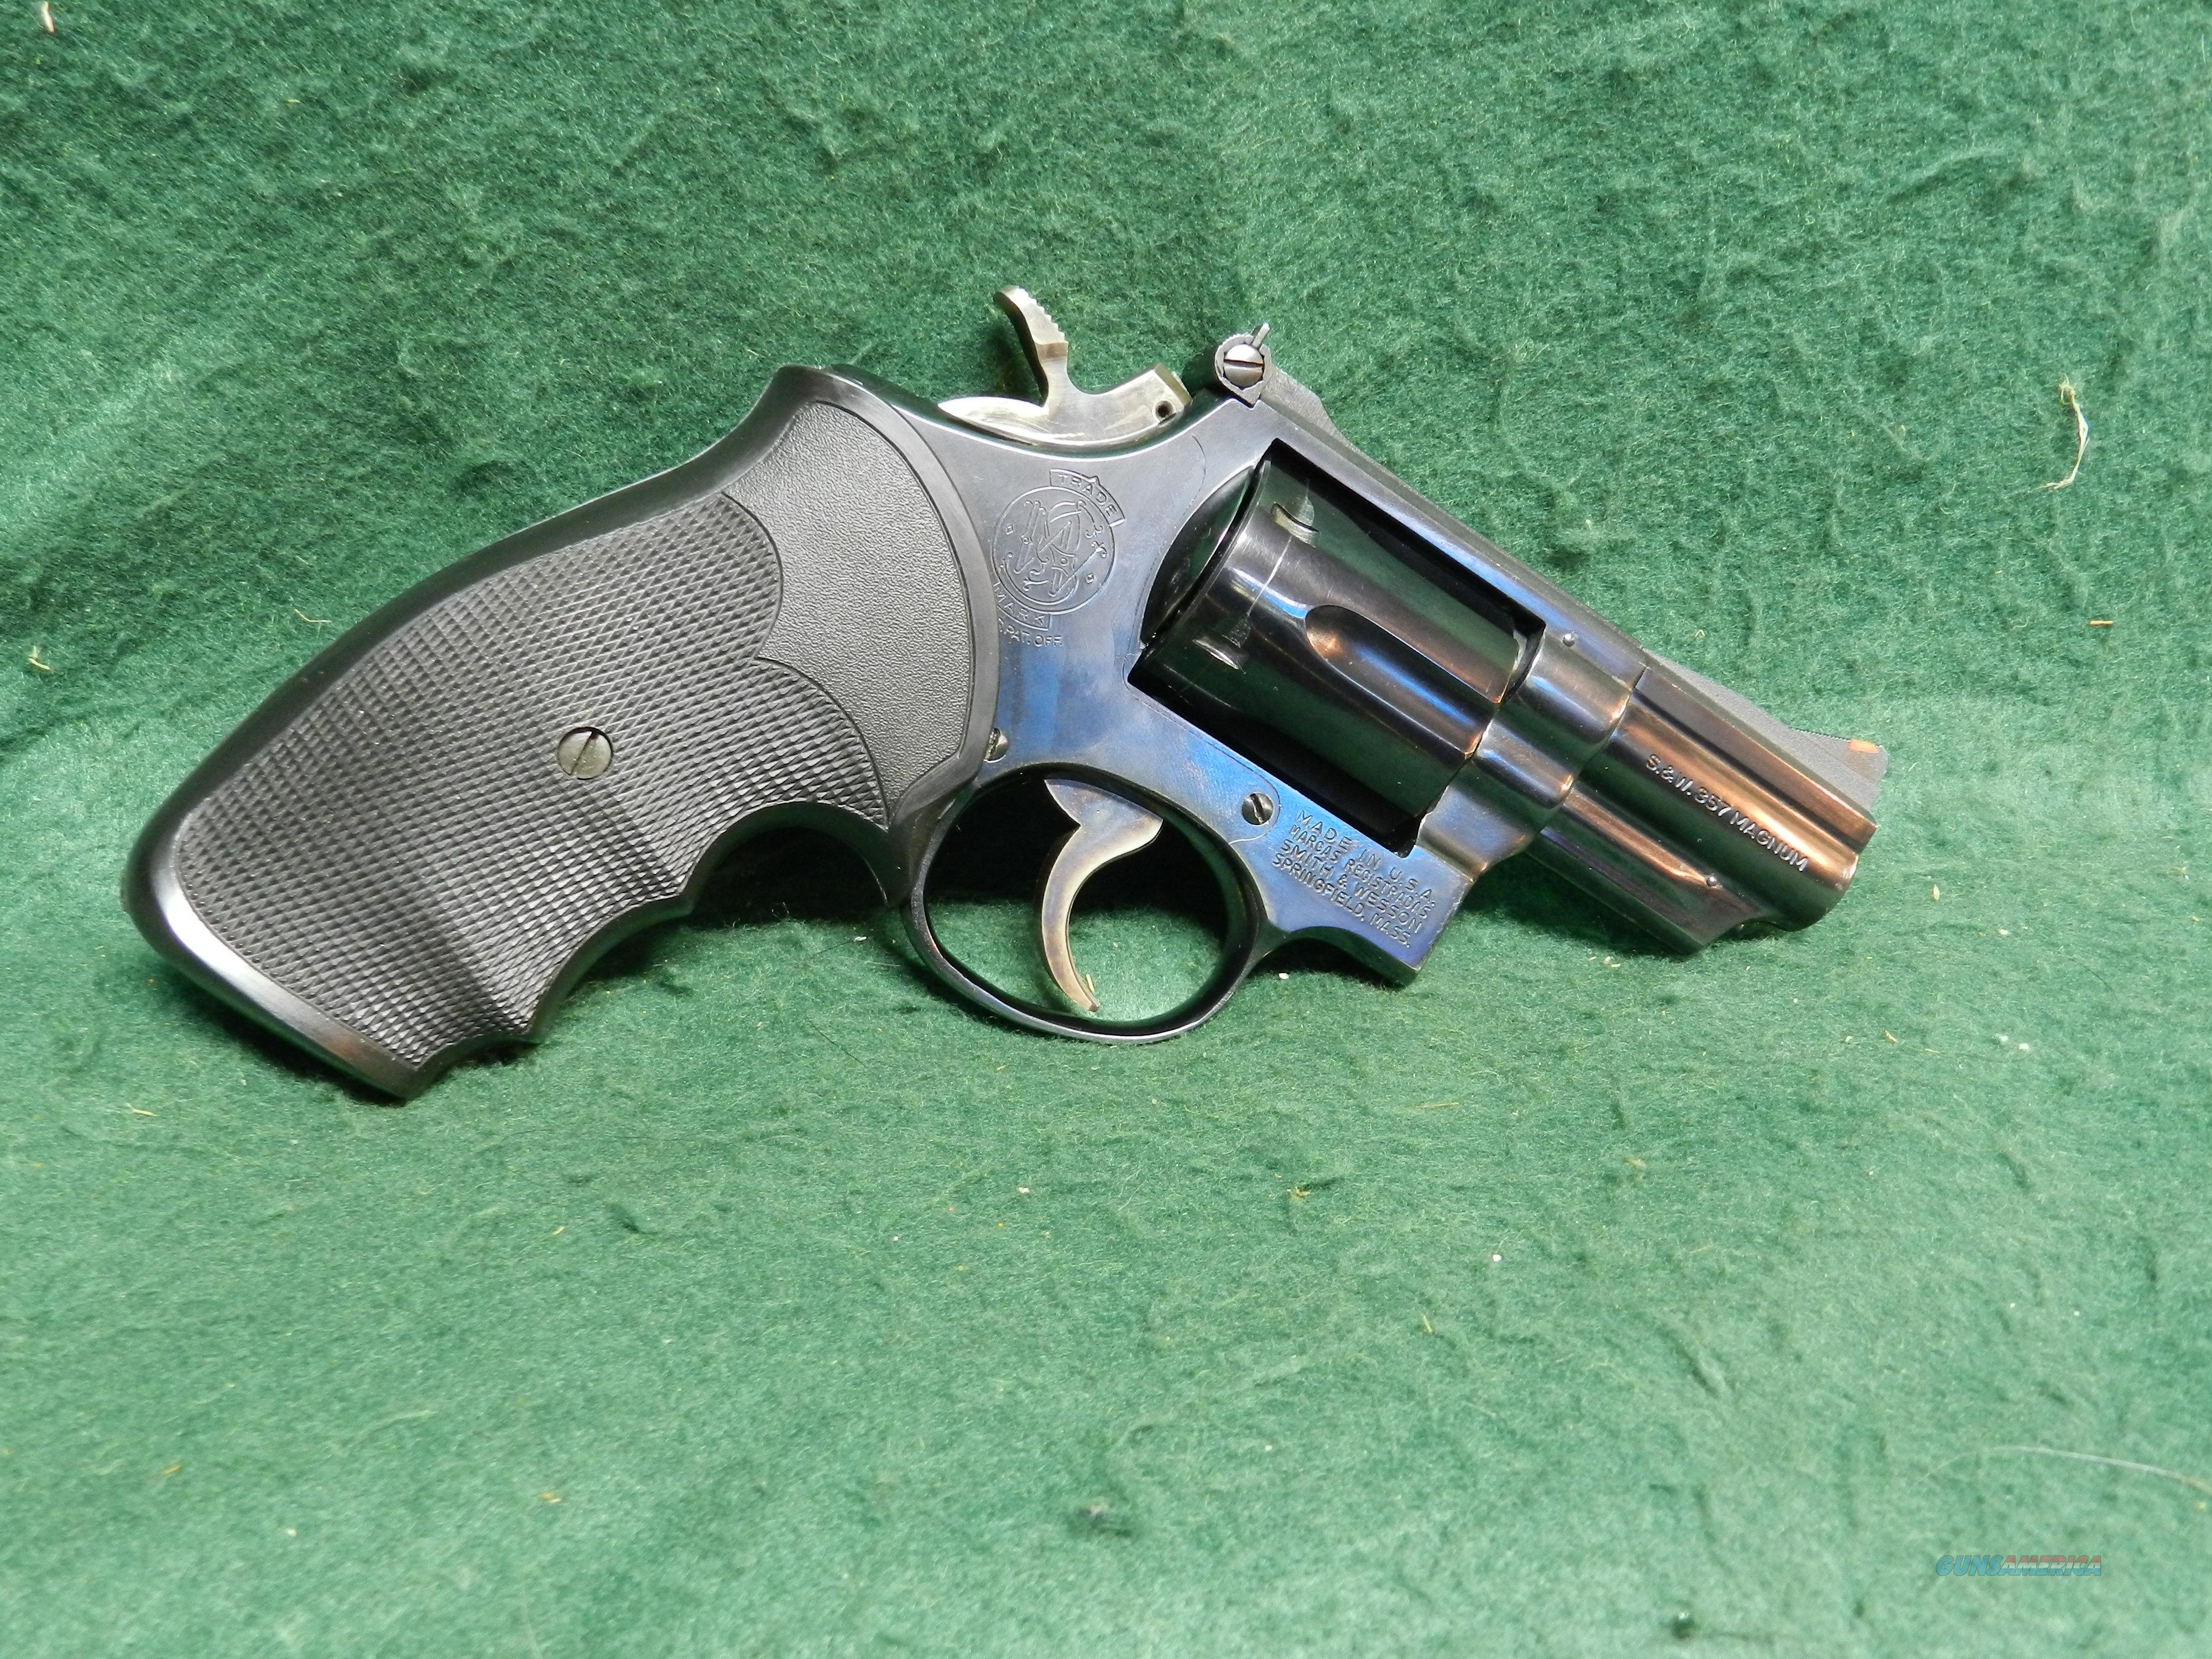 Smith & Wesson Model 19-3 357 Magnum  Guns > Pistols > Smith & Wesson Revolvers > Full Frame Revolver